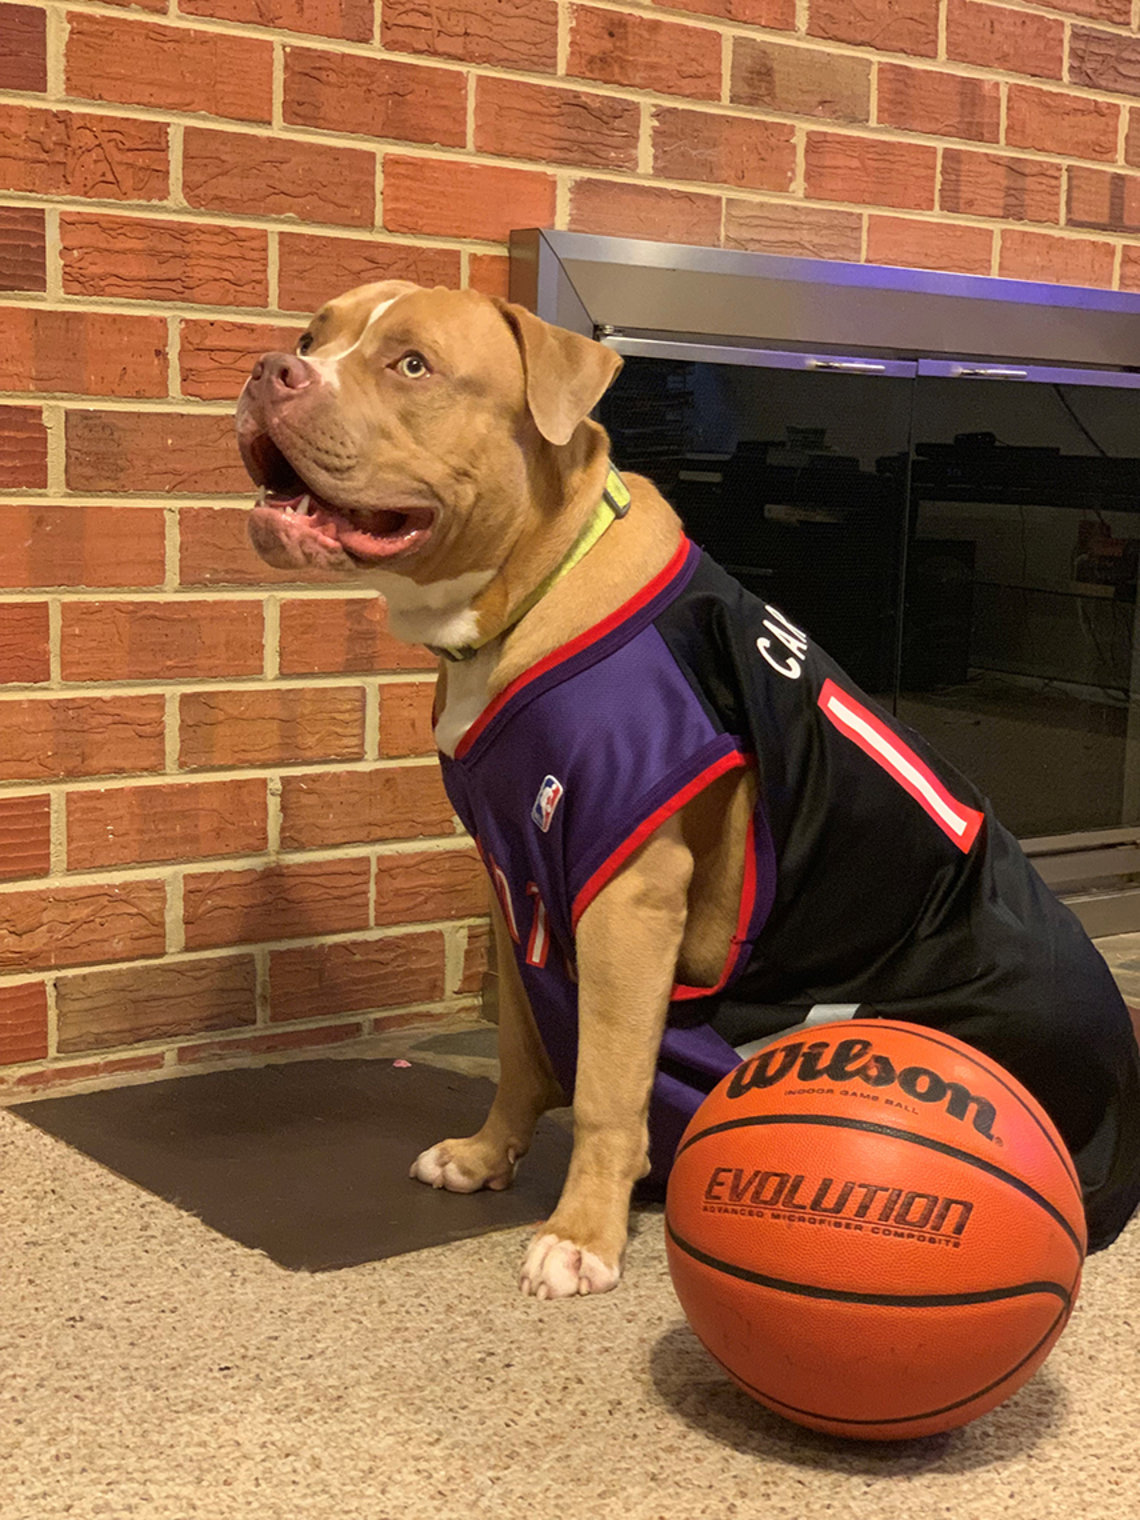 Dog in jersey sits next to basketball.